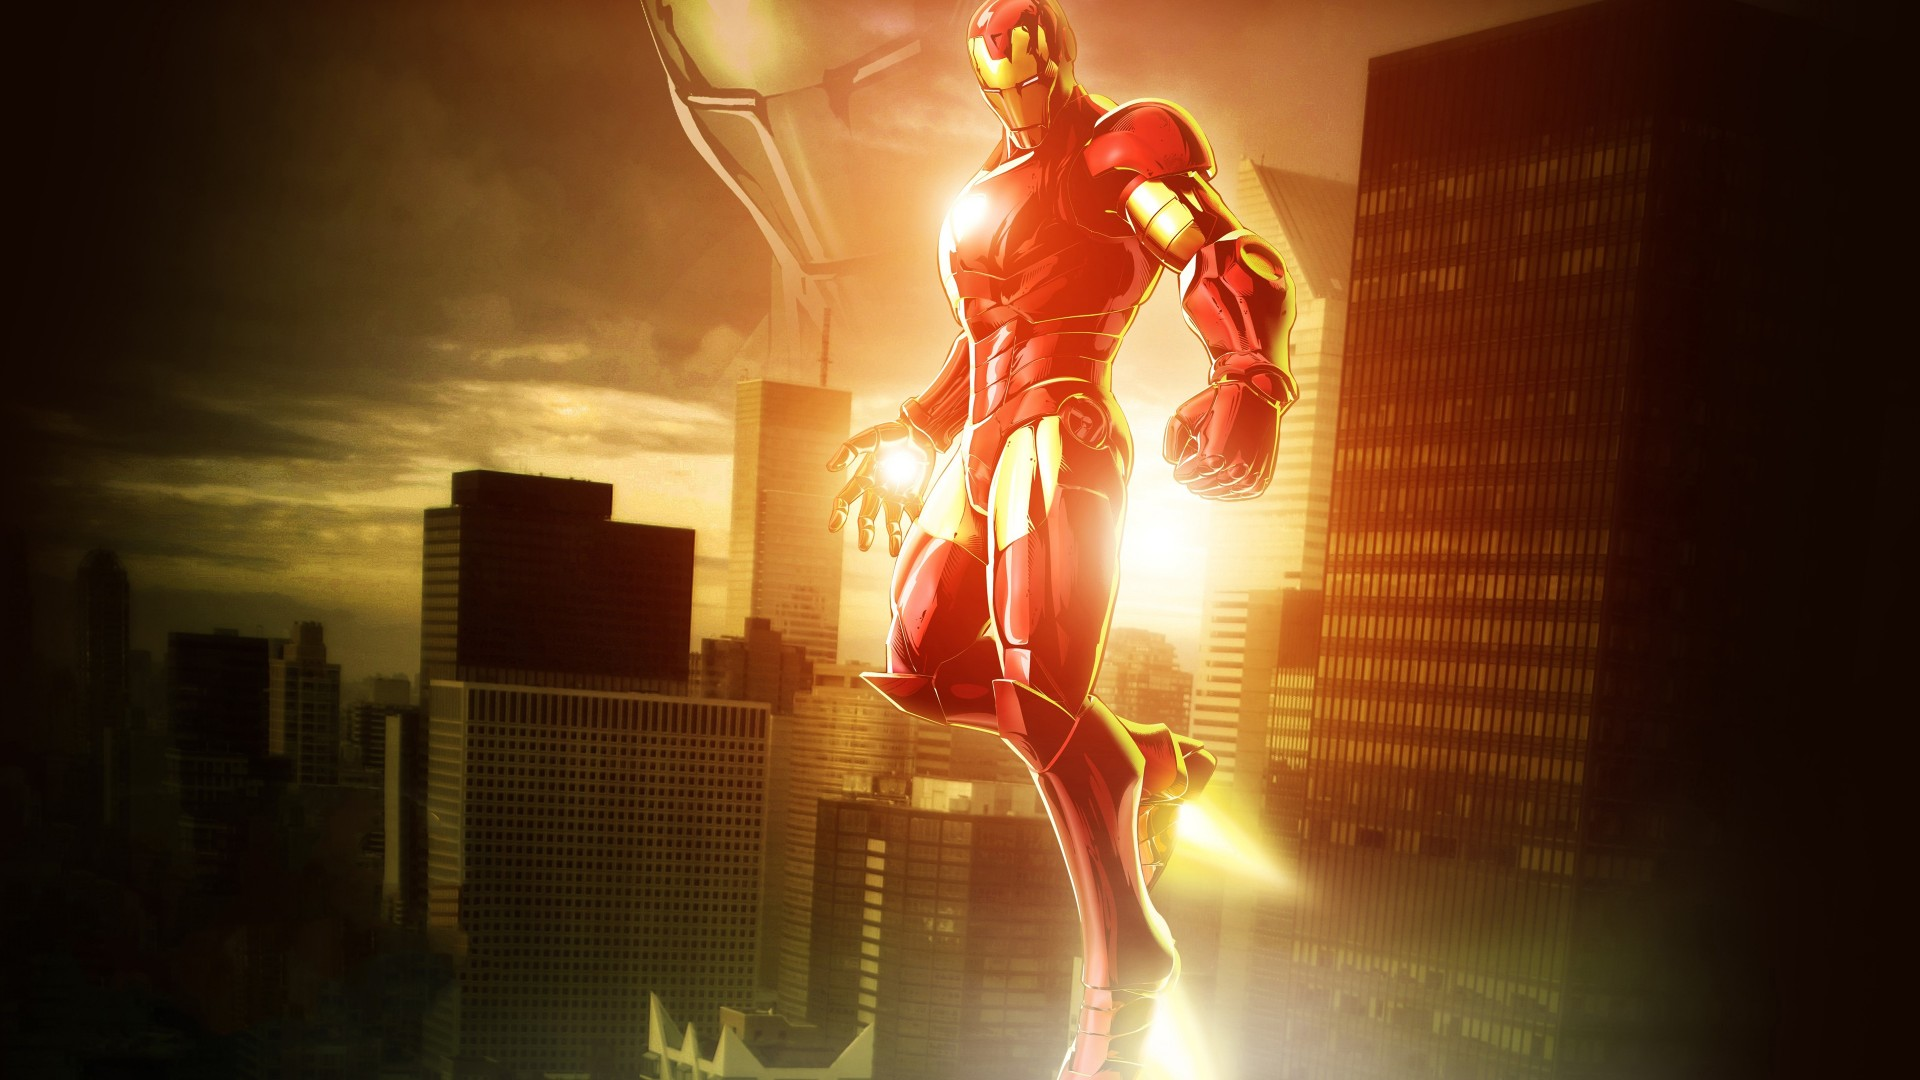 Animated Nature Wallpaper For Windows 7 Iron Man 4k Wallpapers Hd Wallpapers Id 27210